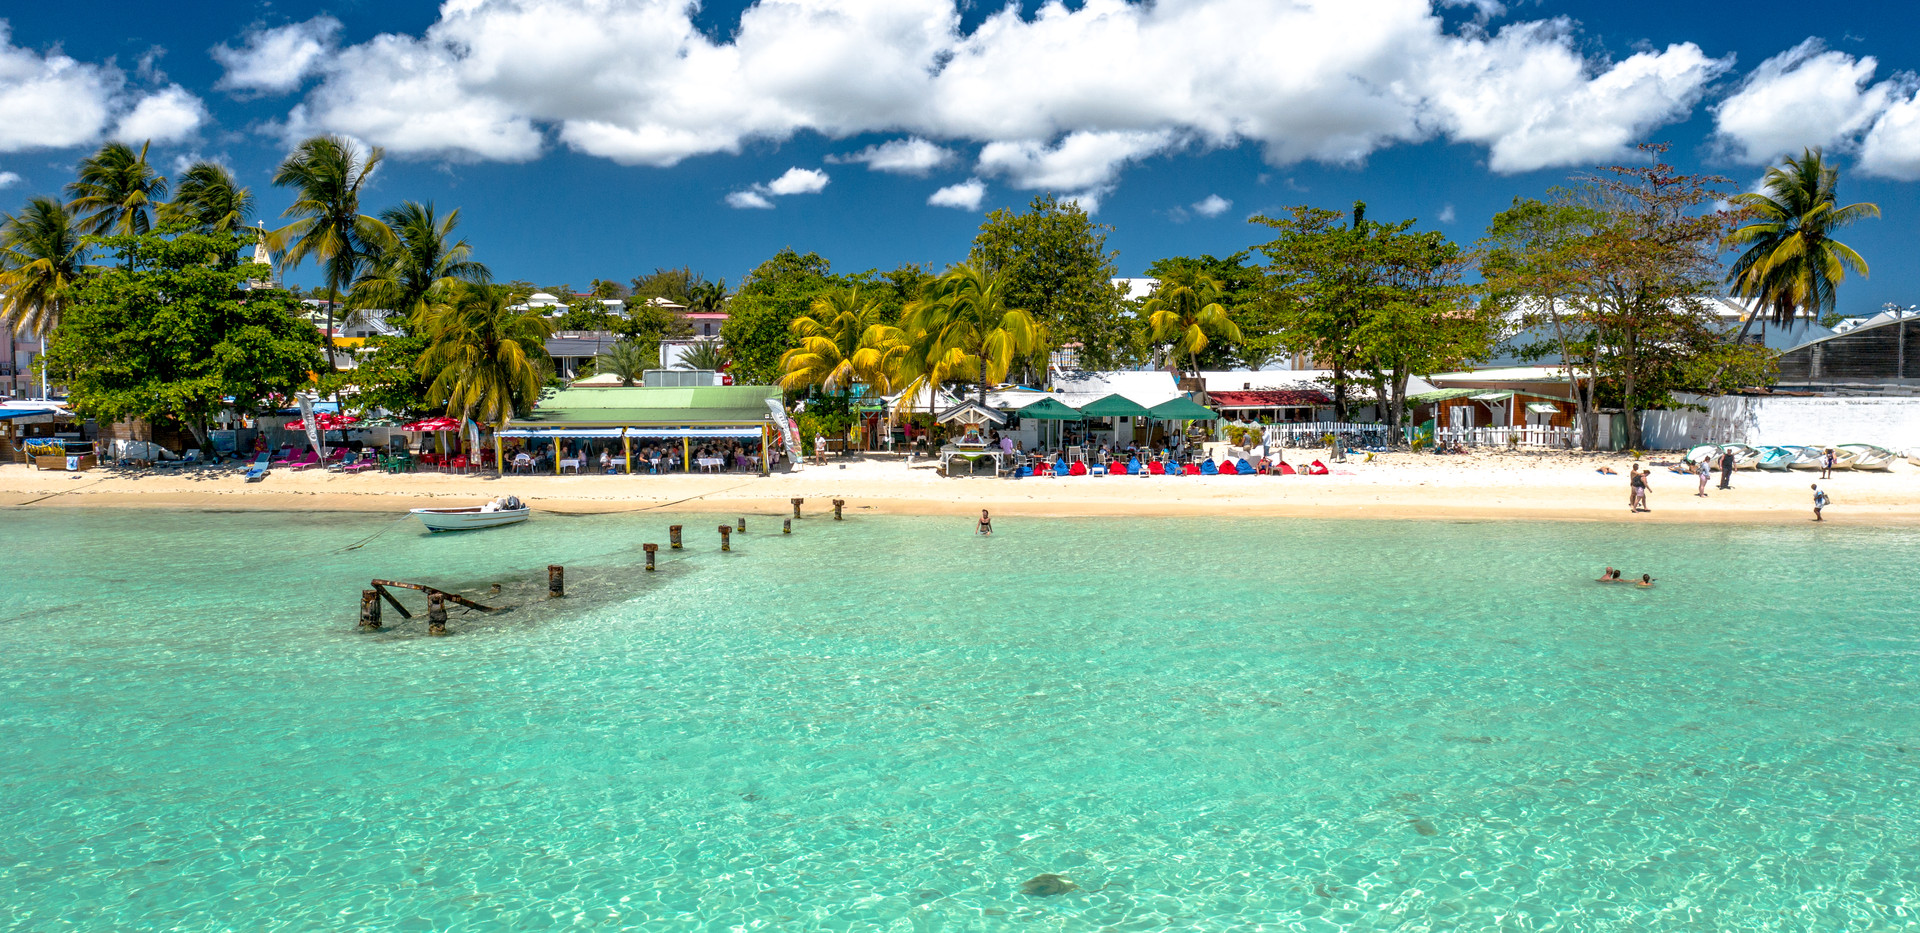 PLAGE ST ANNE - GUADELOUPE